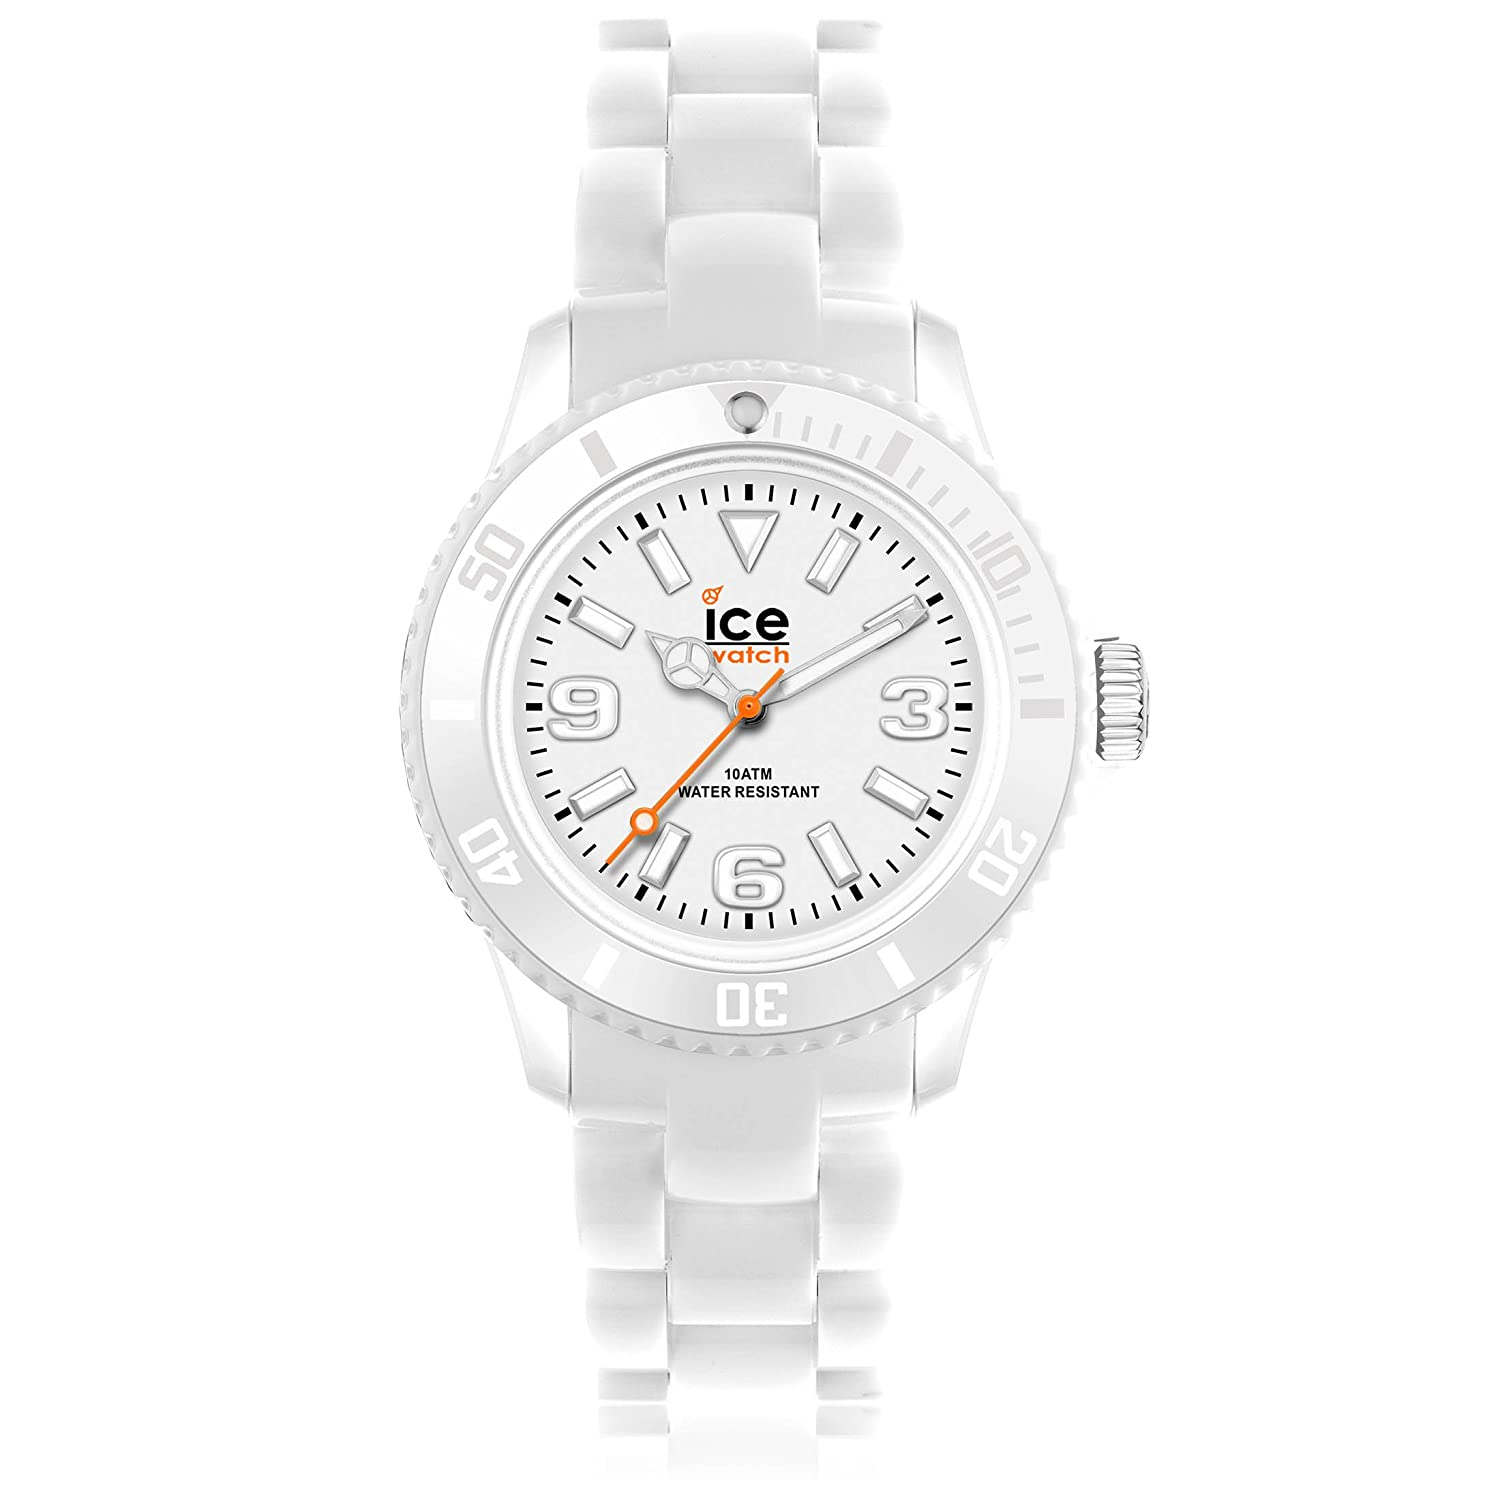 TALLA Medium. Reloj ICE-Watch Unisex